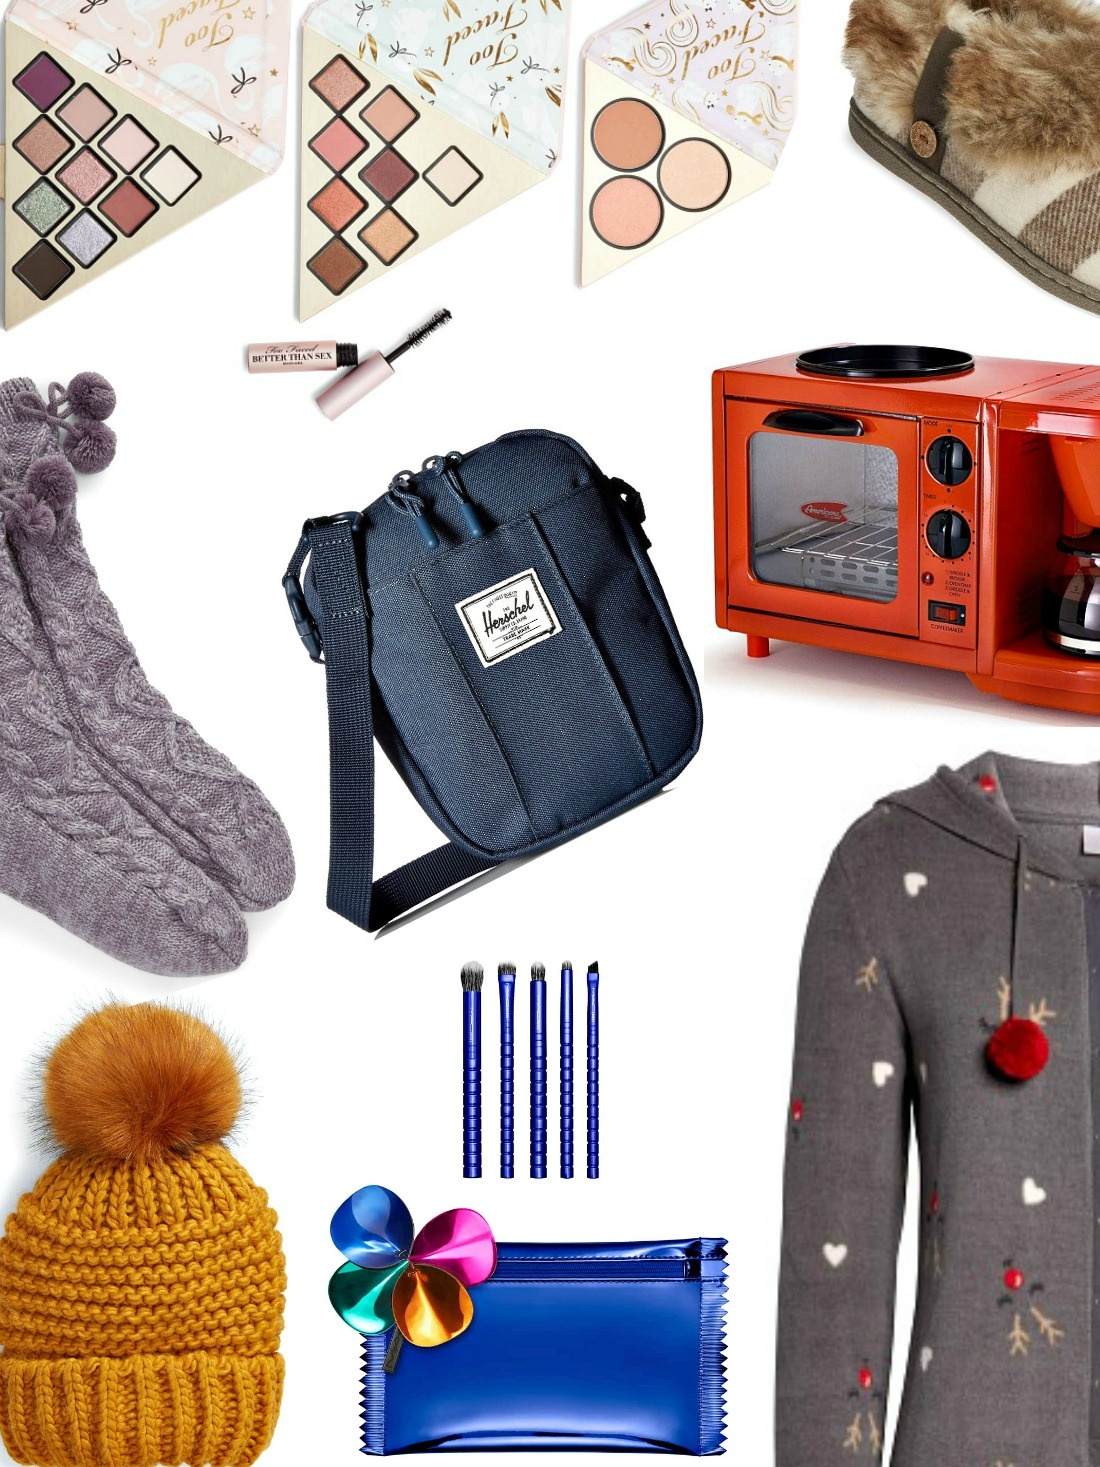 When it comes to buying on a budget, less can definitely mean more.  Get the most bang for your buck with these cool ideas for gifts under $50 for her!